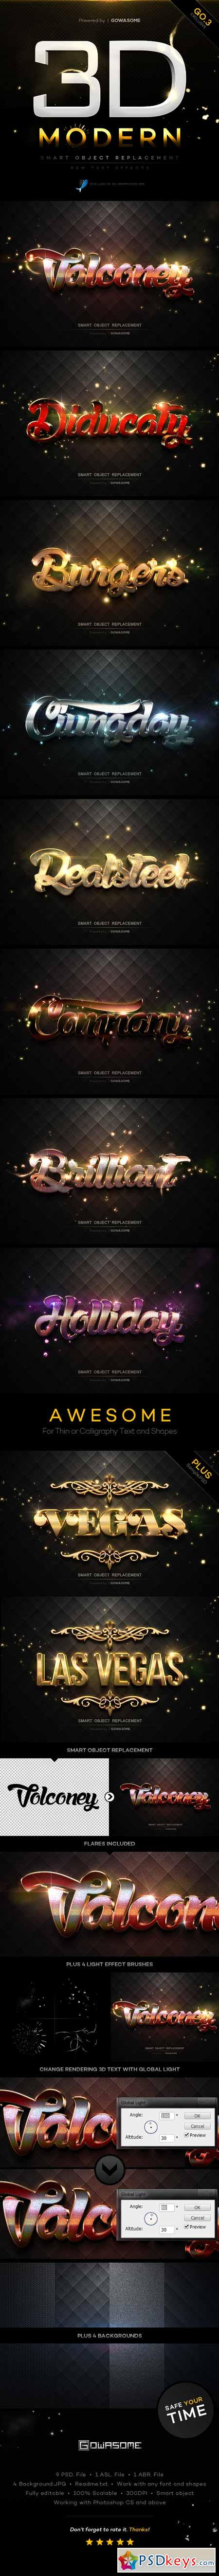 Modern 3D Text Effects GO.3 10193239